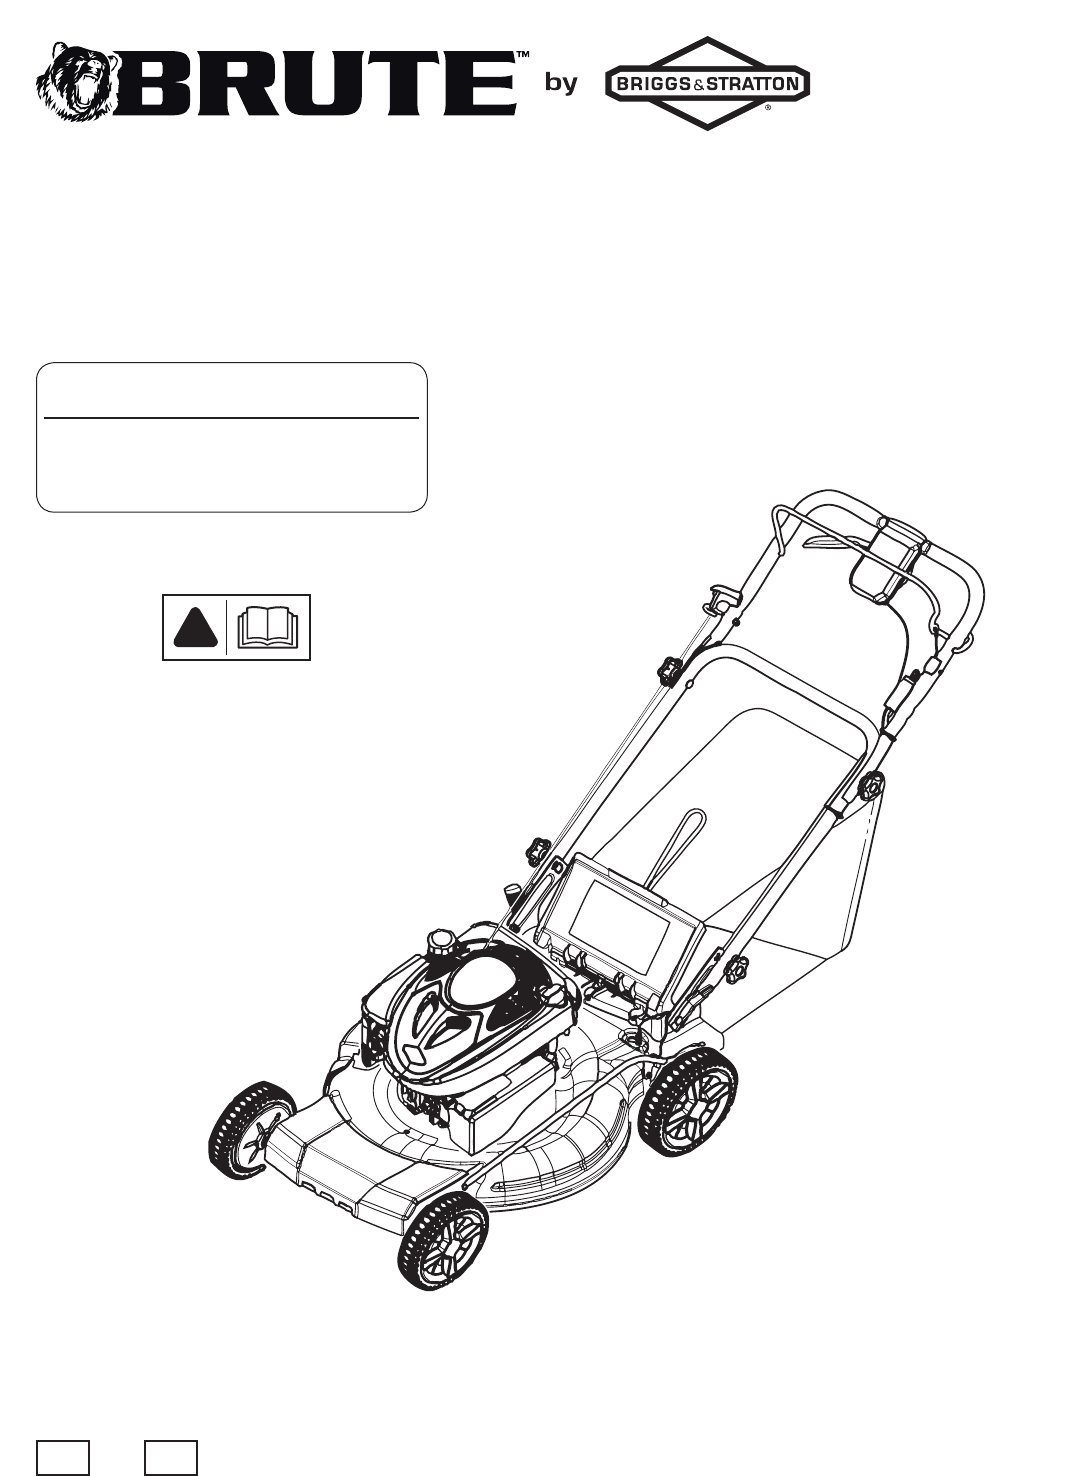 Briggs & Stratton Lawn Mower BTXPV22725 User Guide